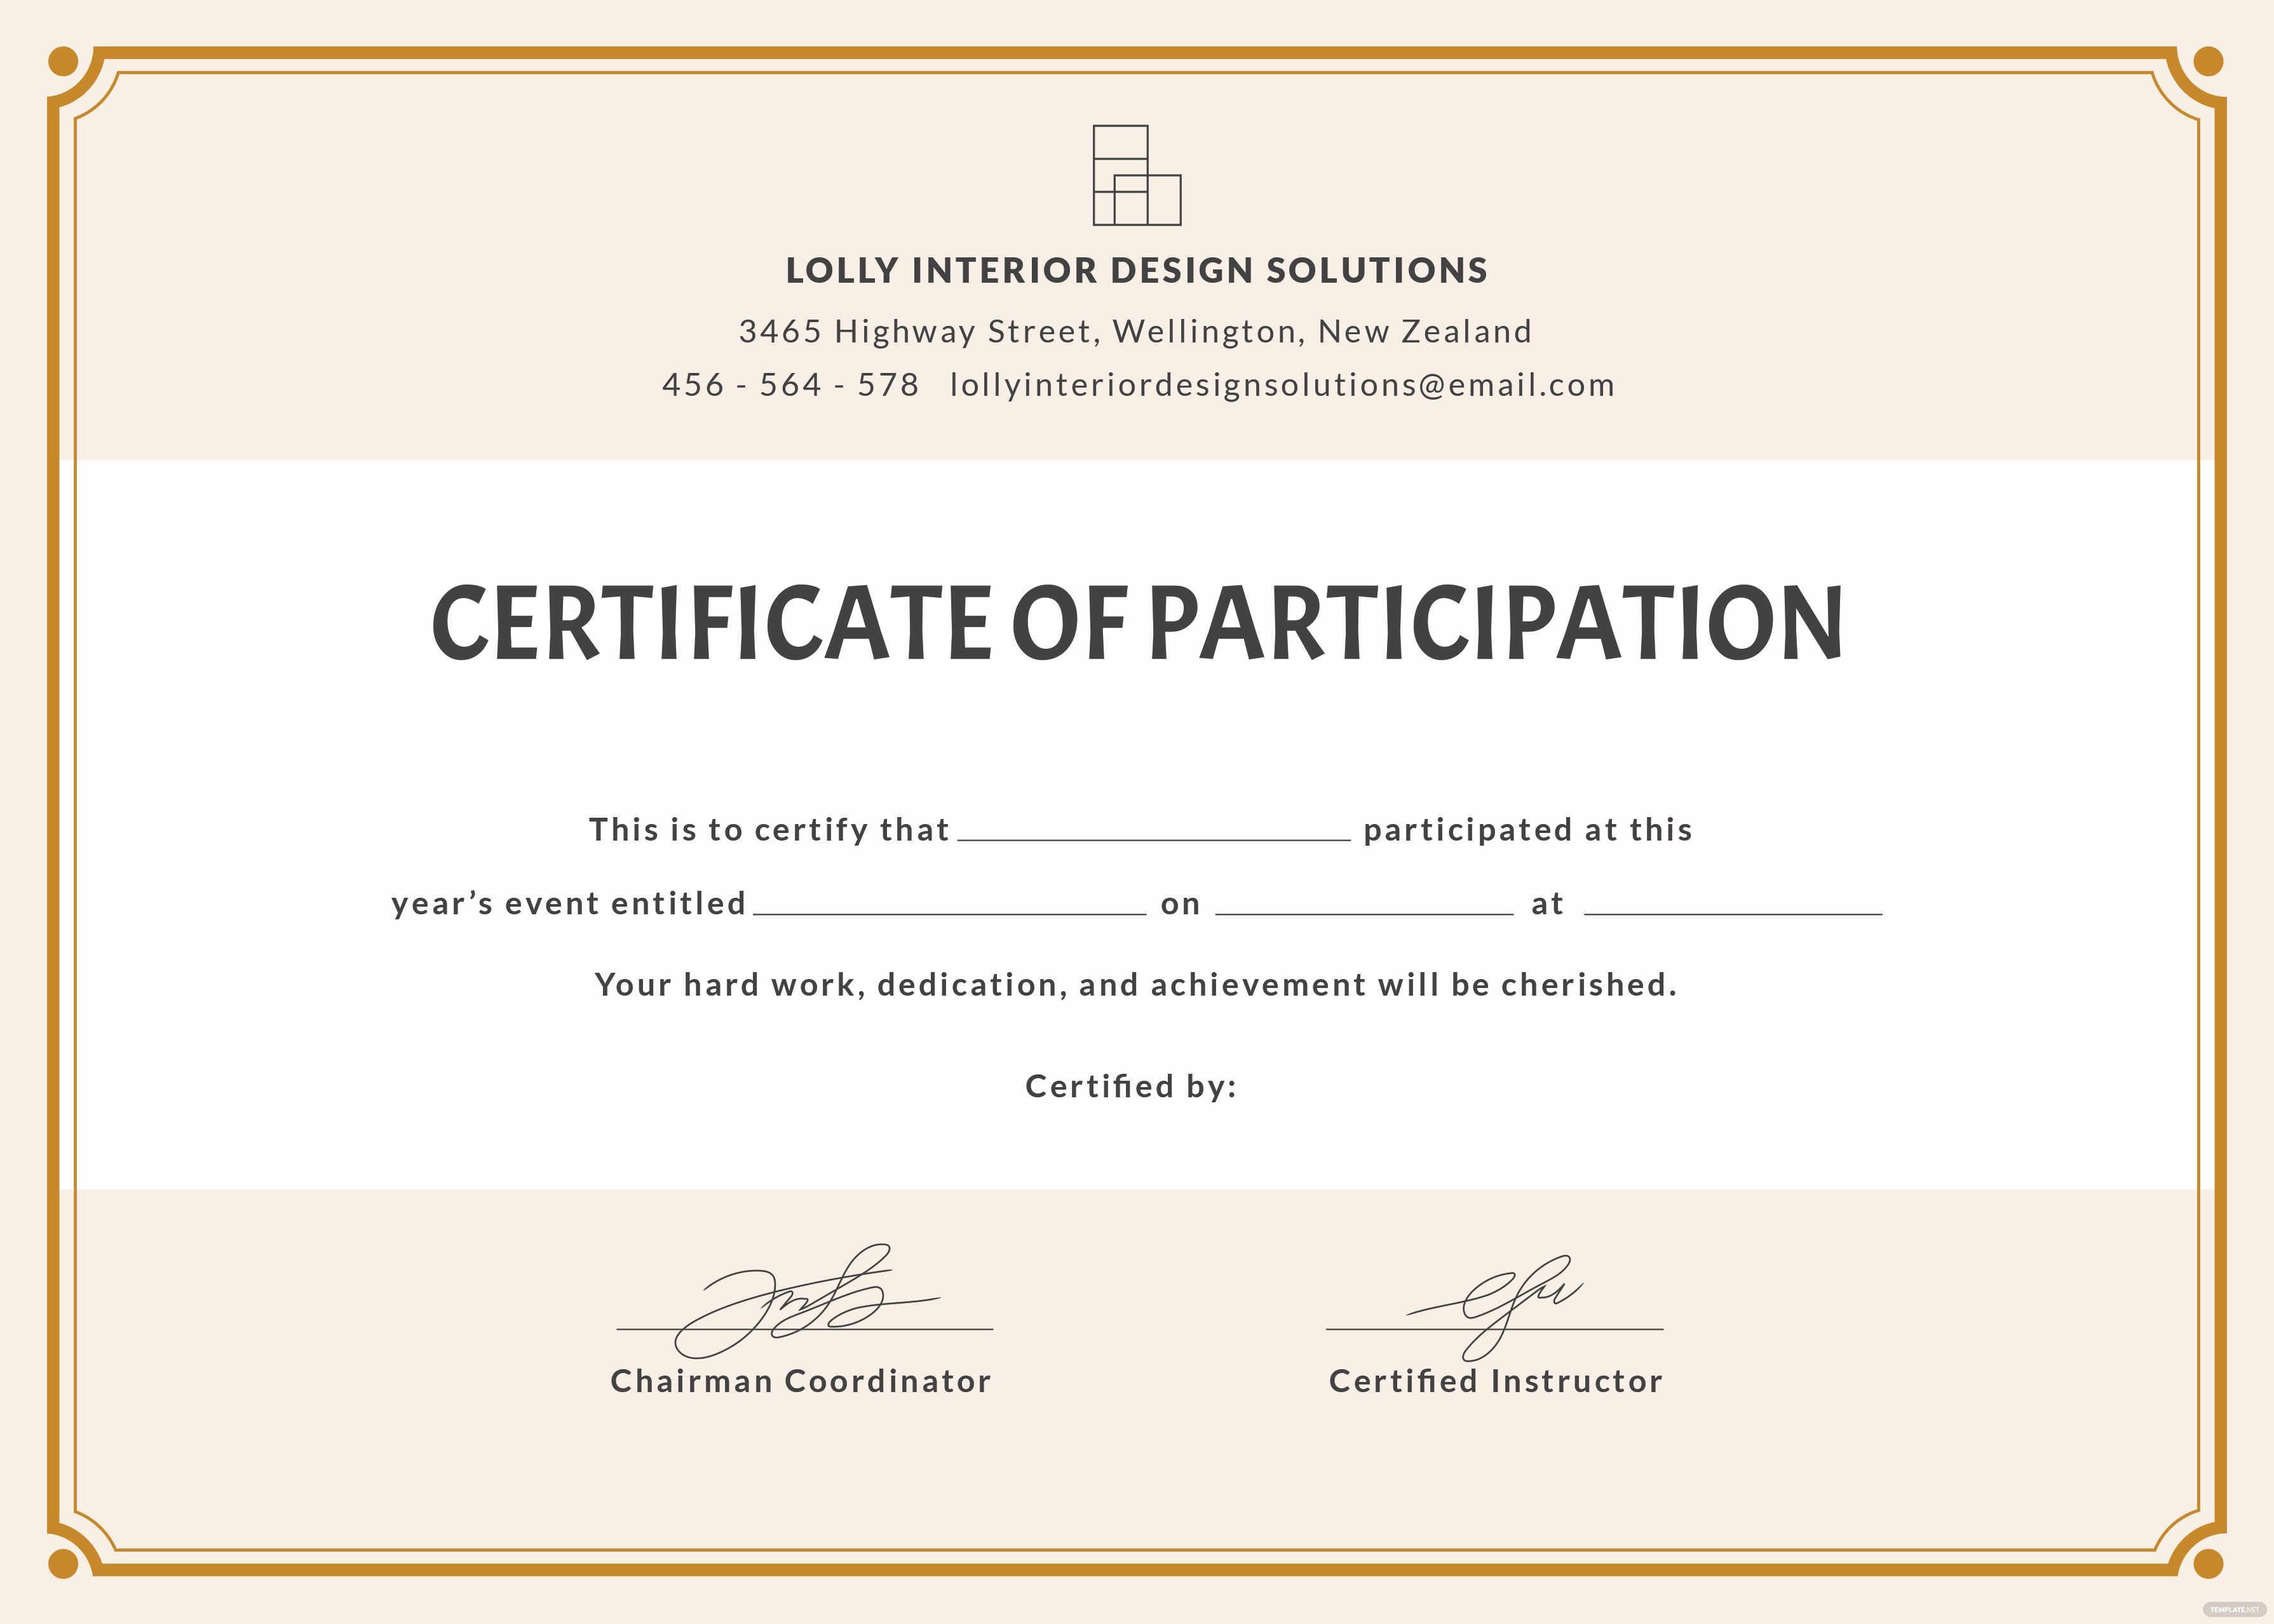 Certificate Of Participation Template Elegant Free Blank Participation Certificate Template In Psd Ms